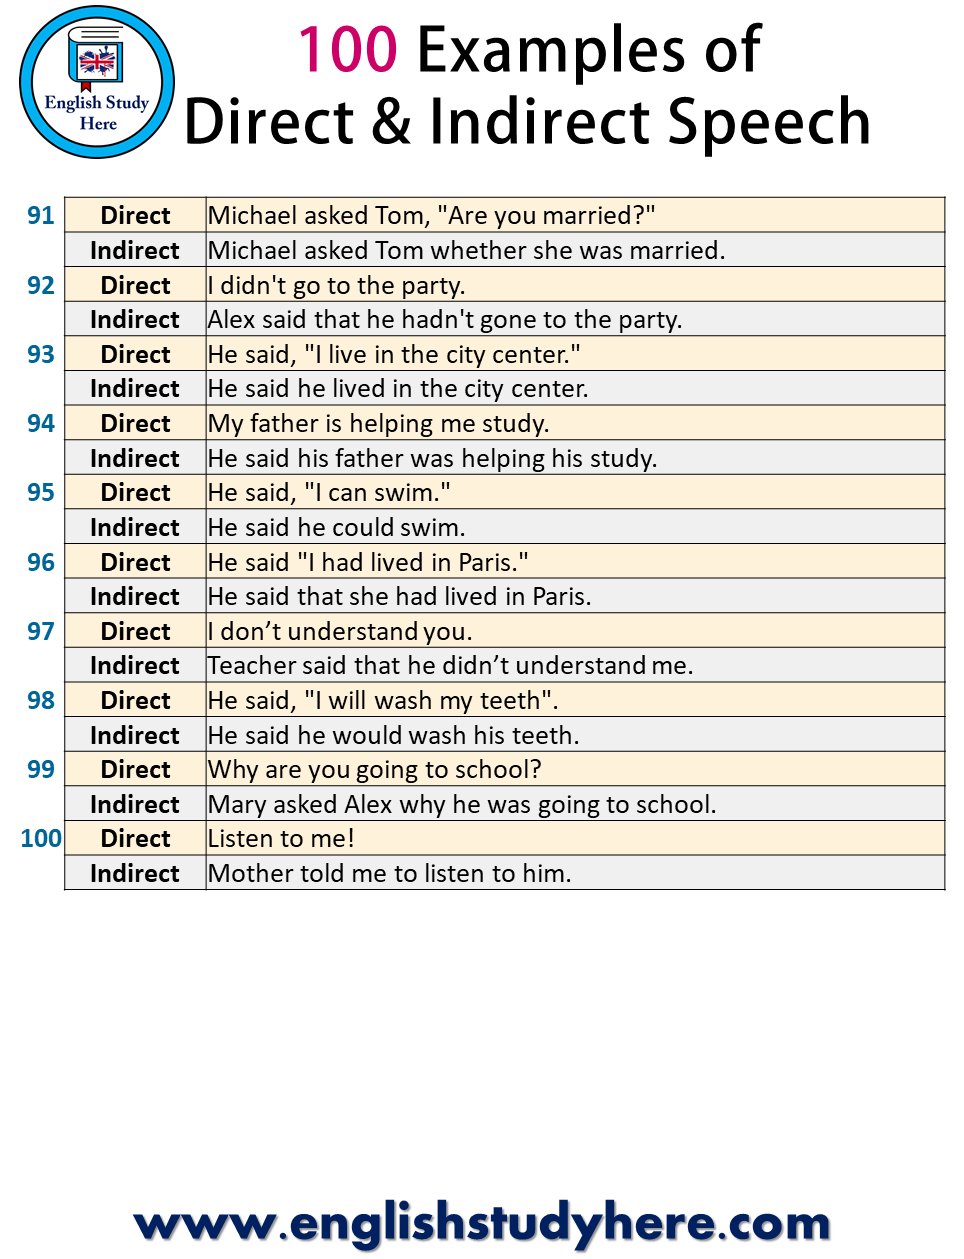 medium resolution of 100 Examples of Direct and Indirect Speech - English Study Here